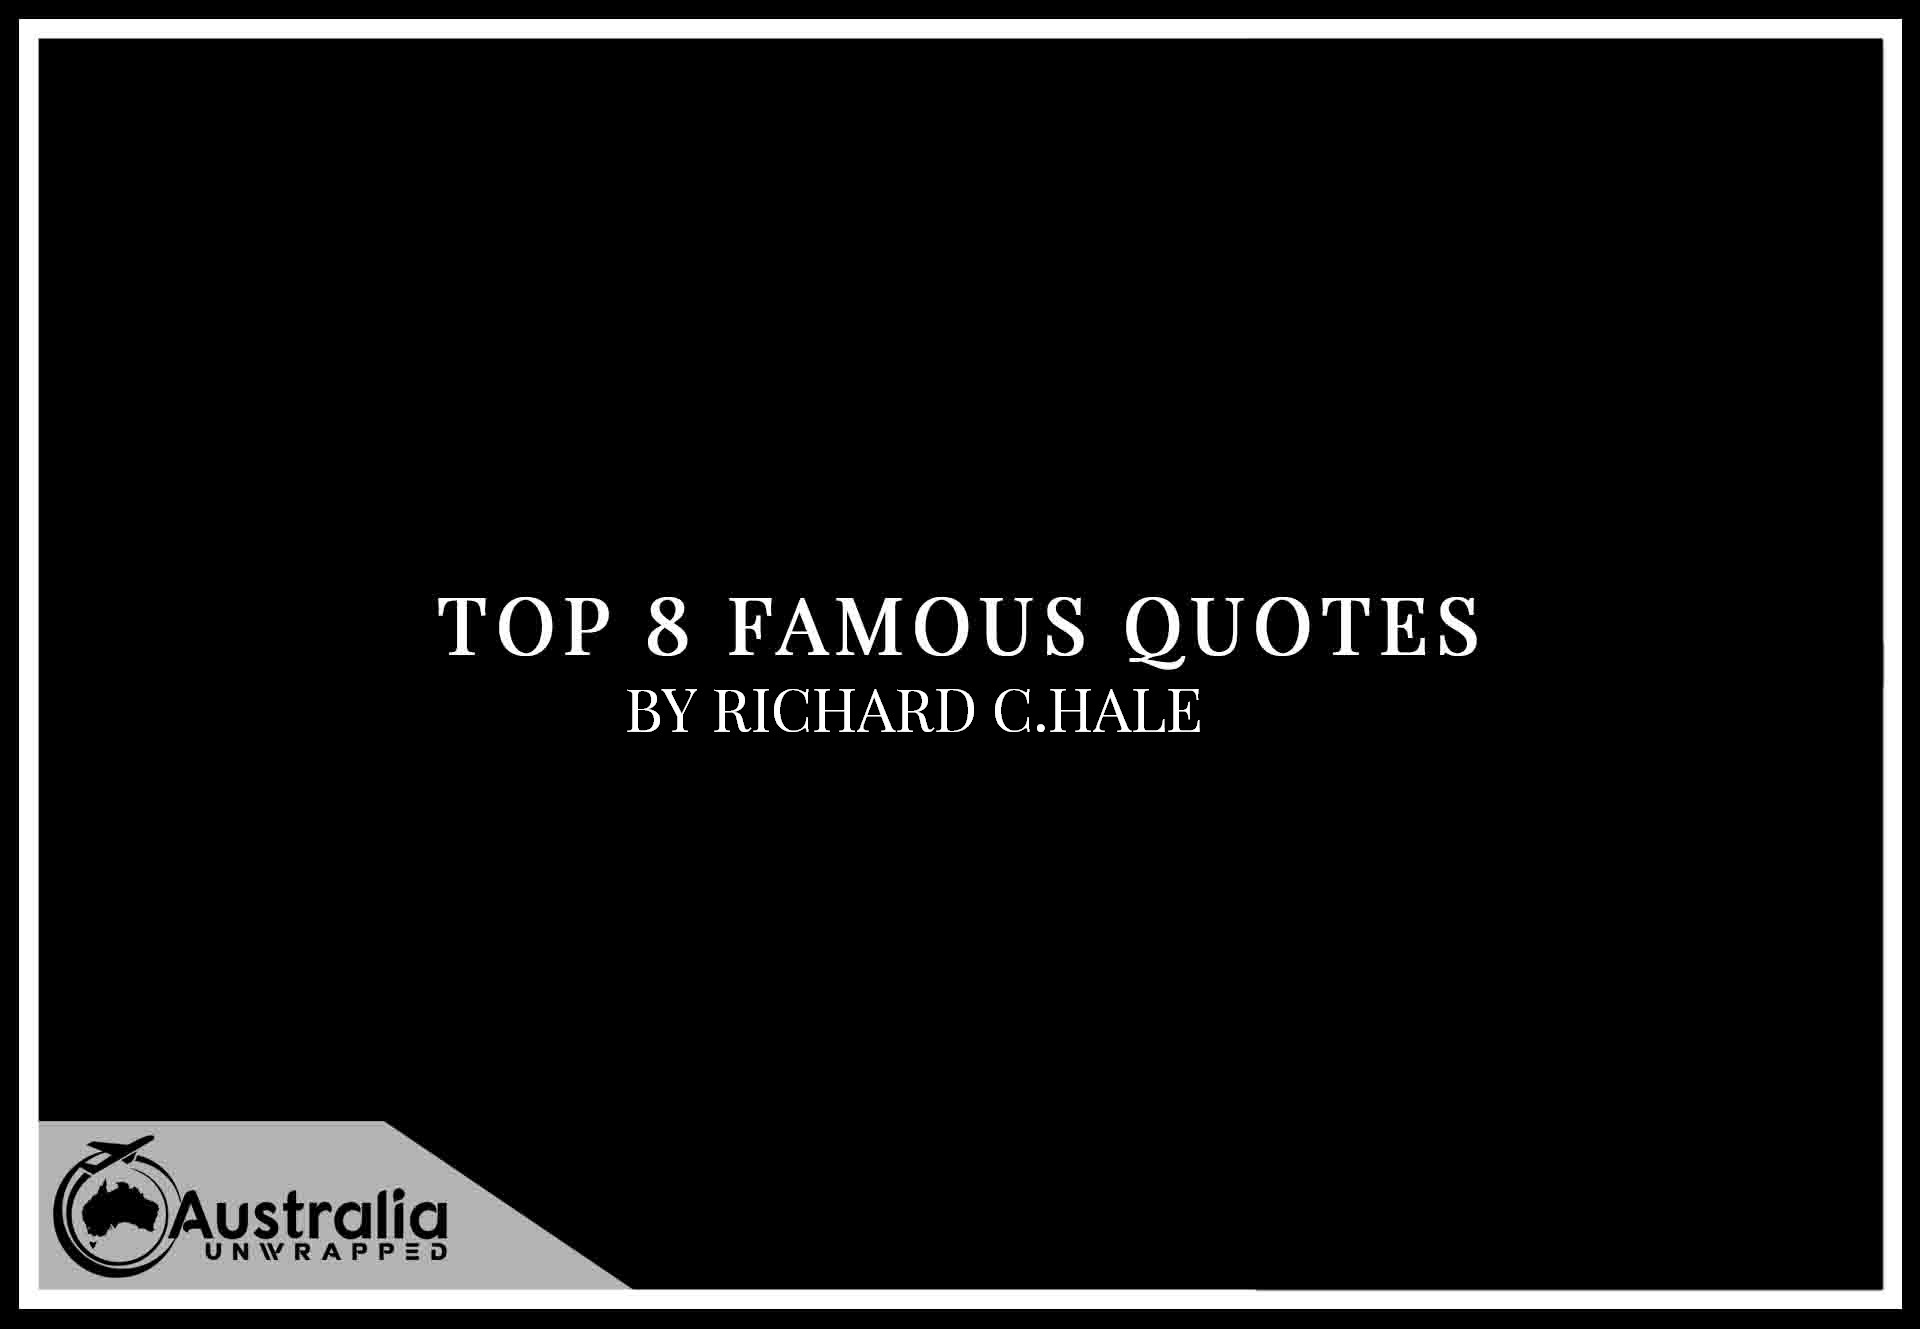 Top 8 Famous Quotes by Author Richard C. Hale